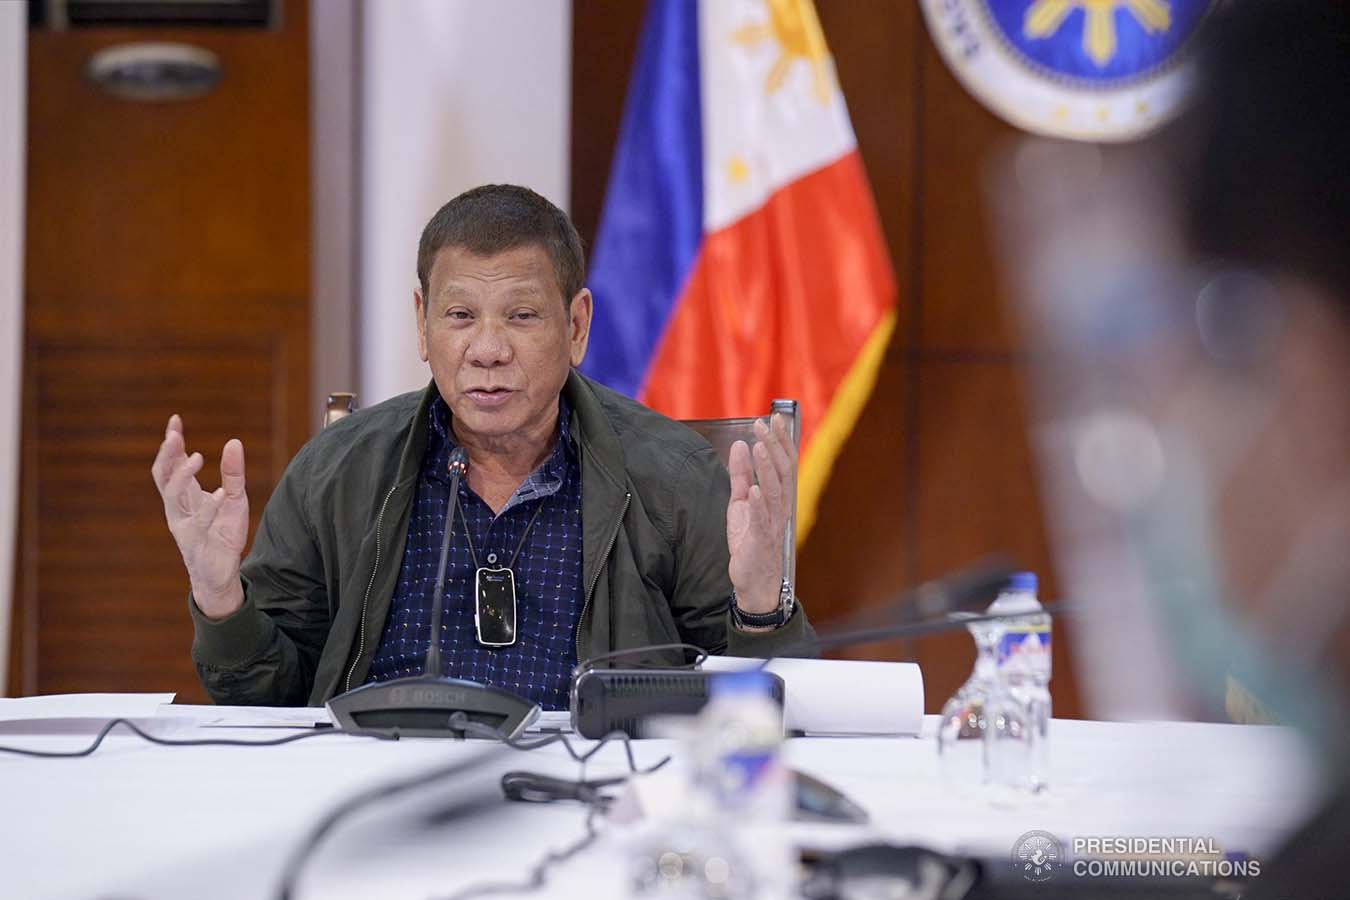 President Rodrigo Roa Duterte talks to the people after holding a meeting with the Inter-Agency Task Force on the Emerging Infectious Diseases (IATF-EID) core members at the Presidential Guest House in Panacan, Davao City on July 7, 2020. ARMAN BAYLON/PRESIDENTIAL PHOTO